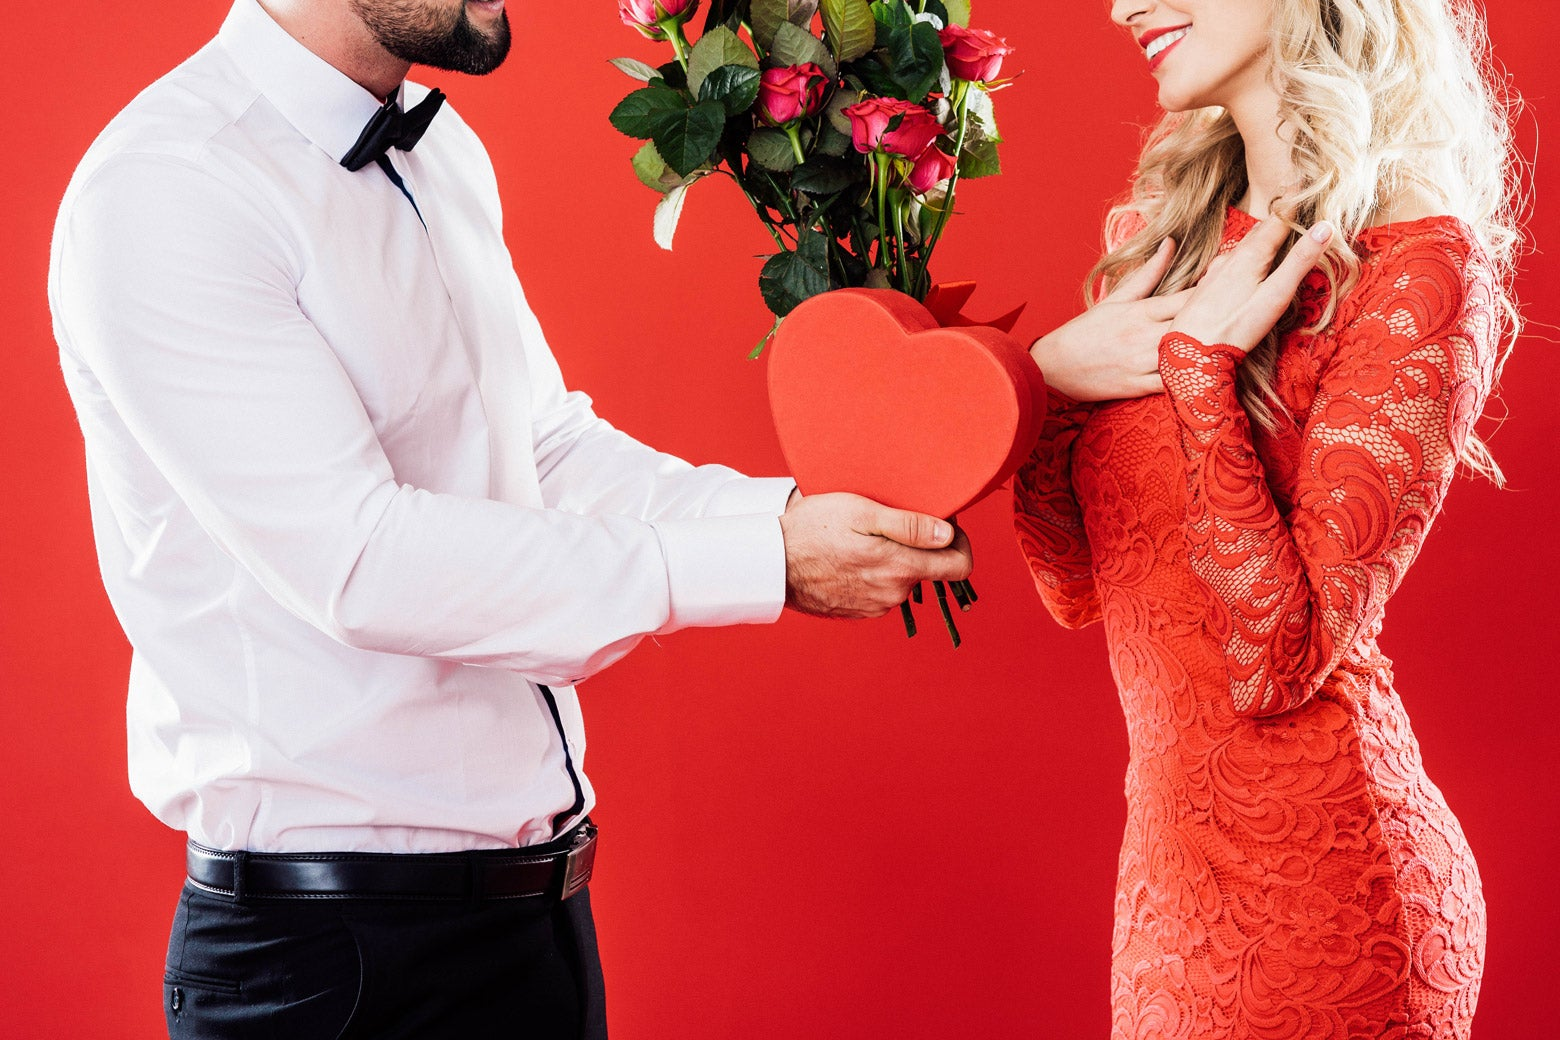 Man giving a woman chocolates and flowers for Valentine's Day.